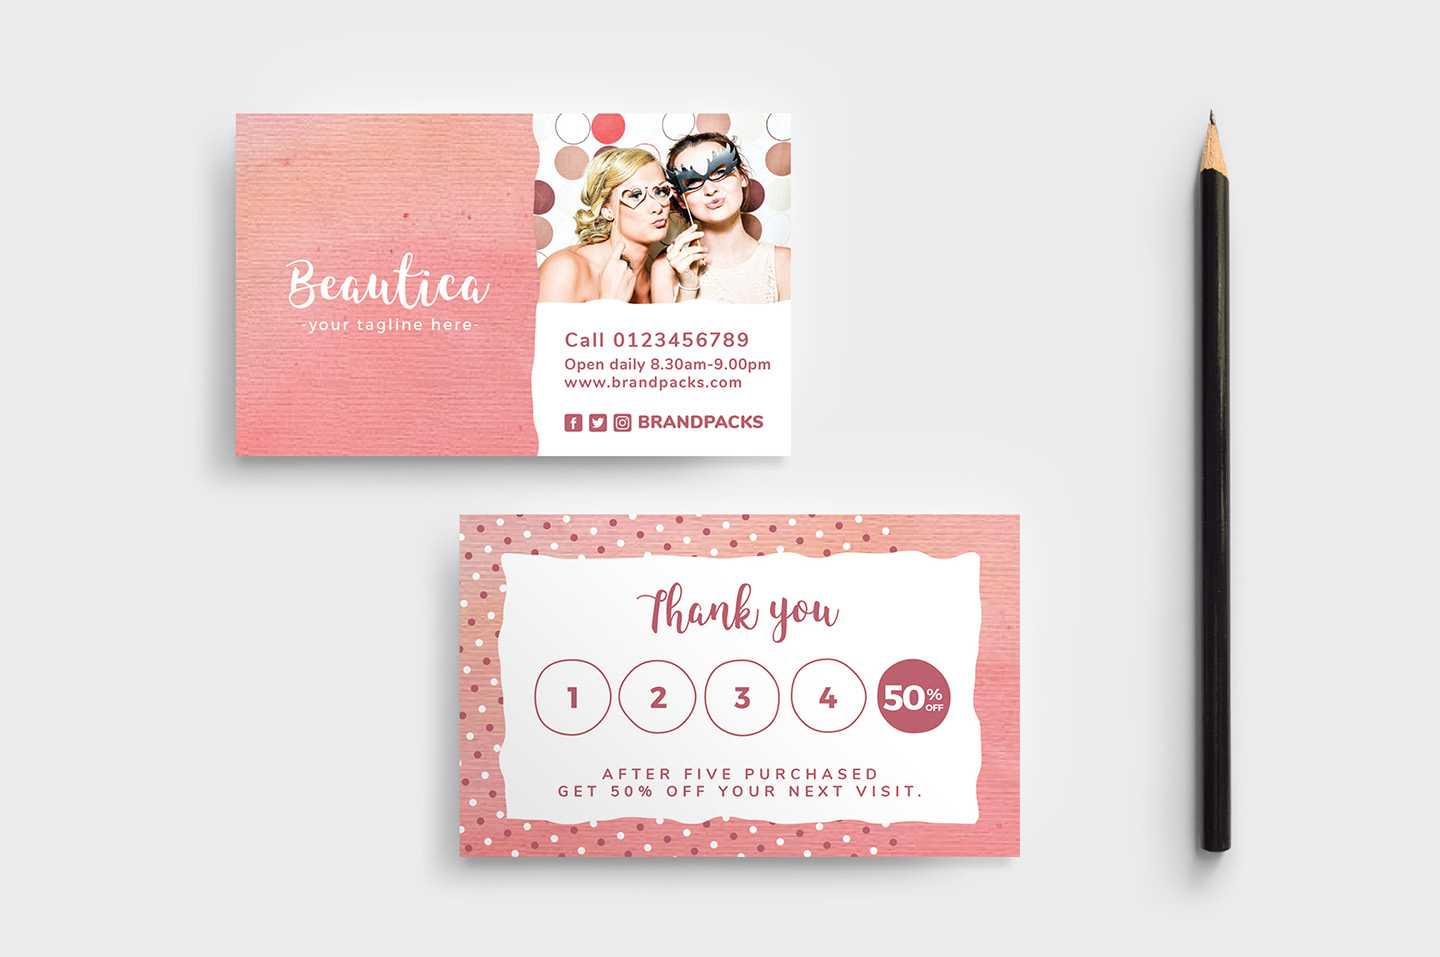 Free Loyalty Card Templates - Psd, Ai & Vector - Brandpacks With Regard To Customer Loyalty Card Template Free